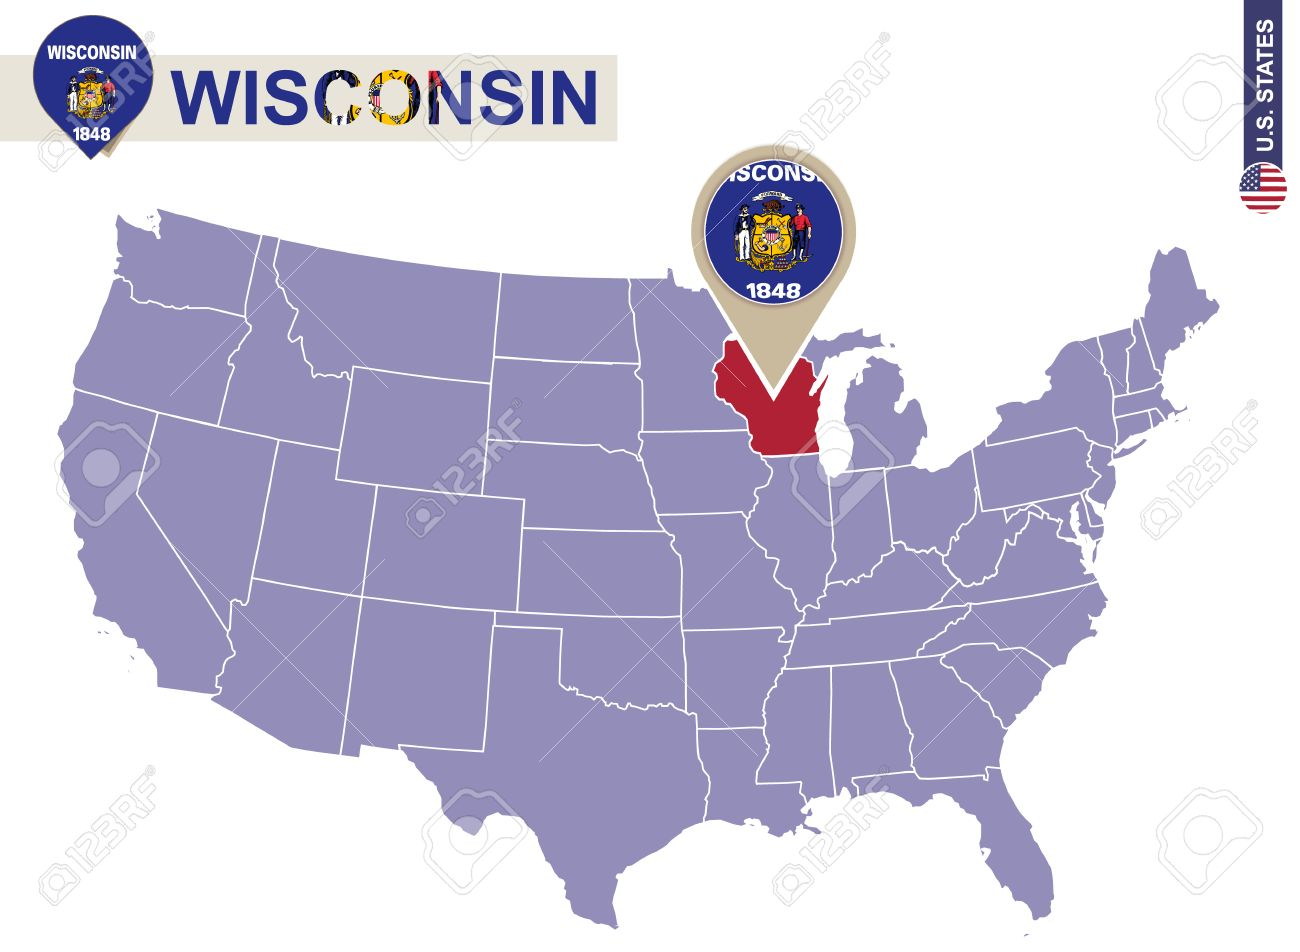 Wisconsin State on USA Map. Wisconsin flag and map. US States.